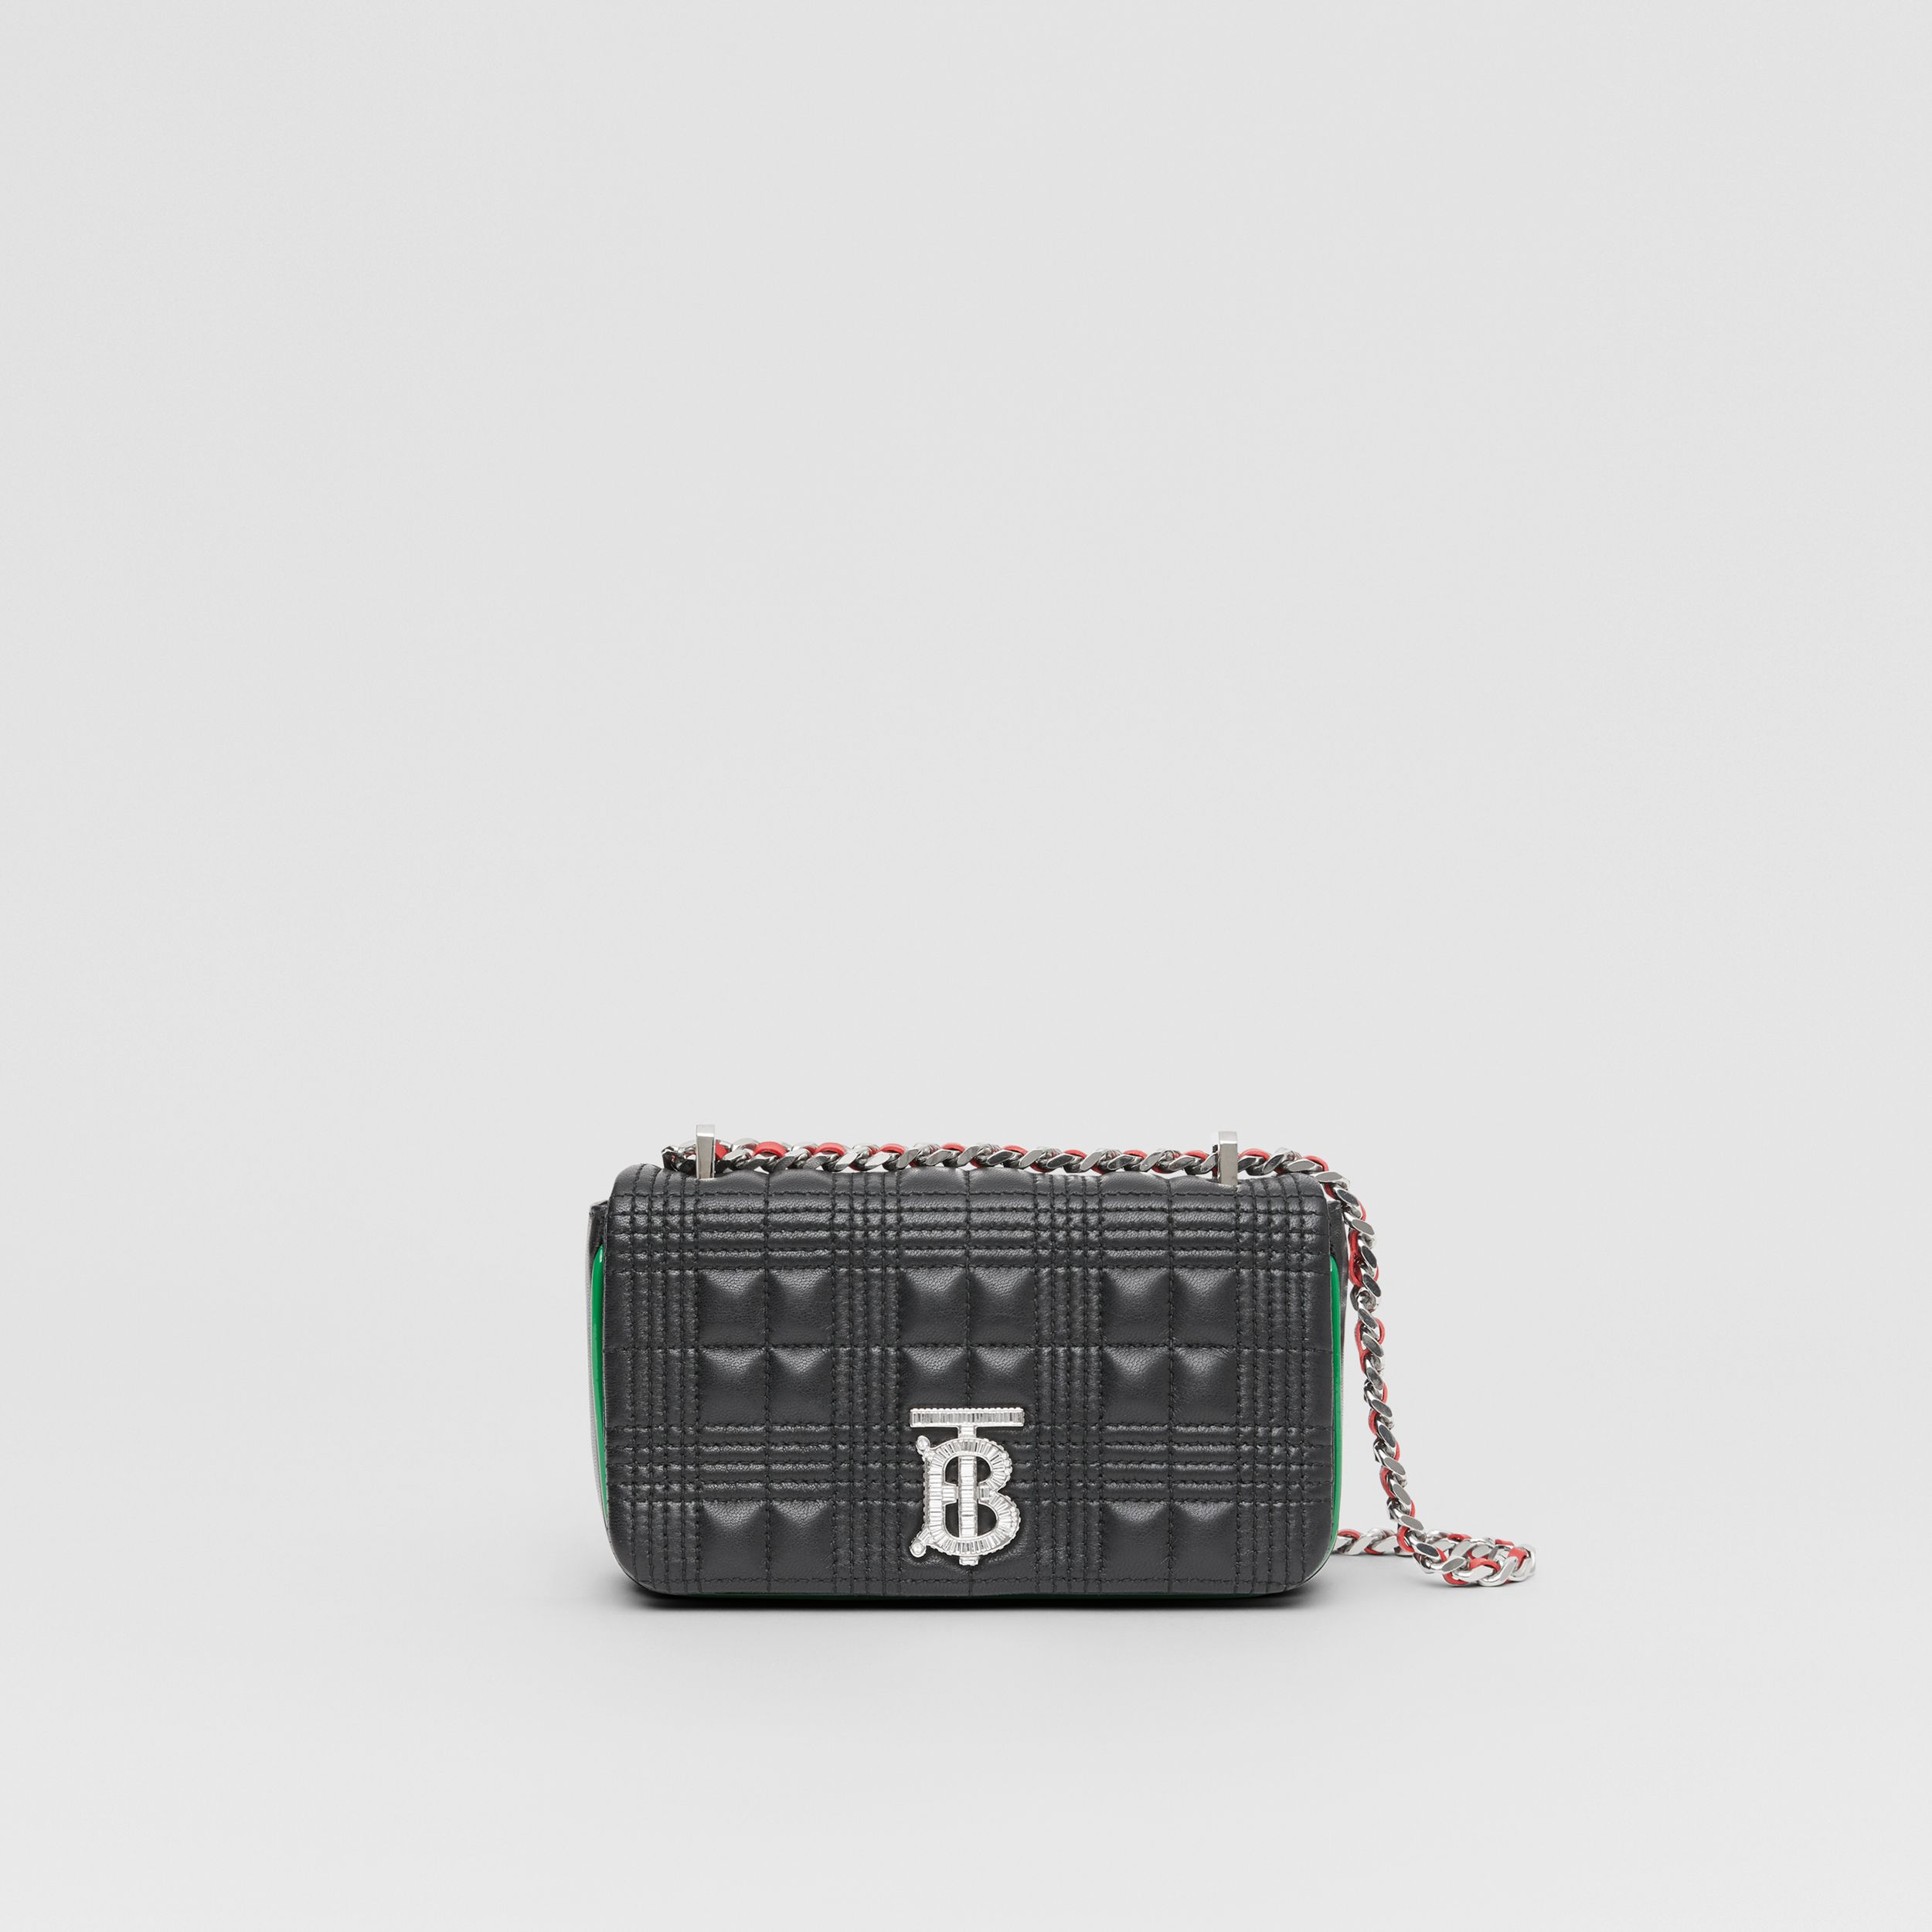 Mini Quilted Lambskin Lola Bag in Black - Women | Burberry - 1